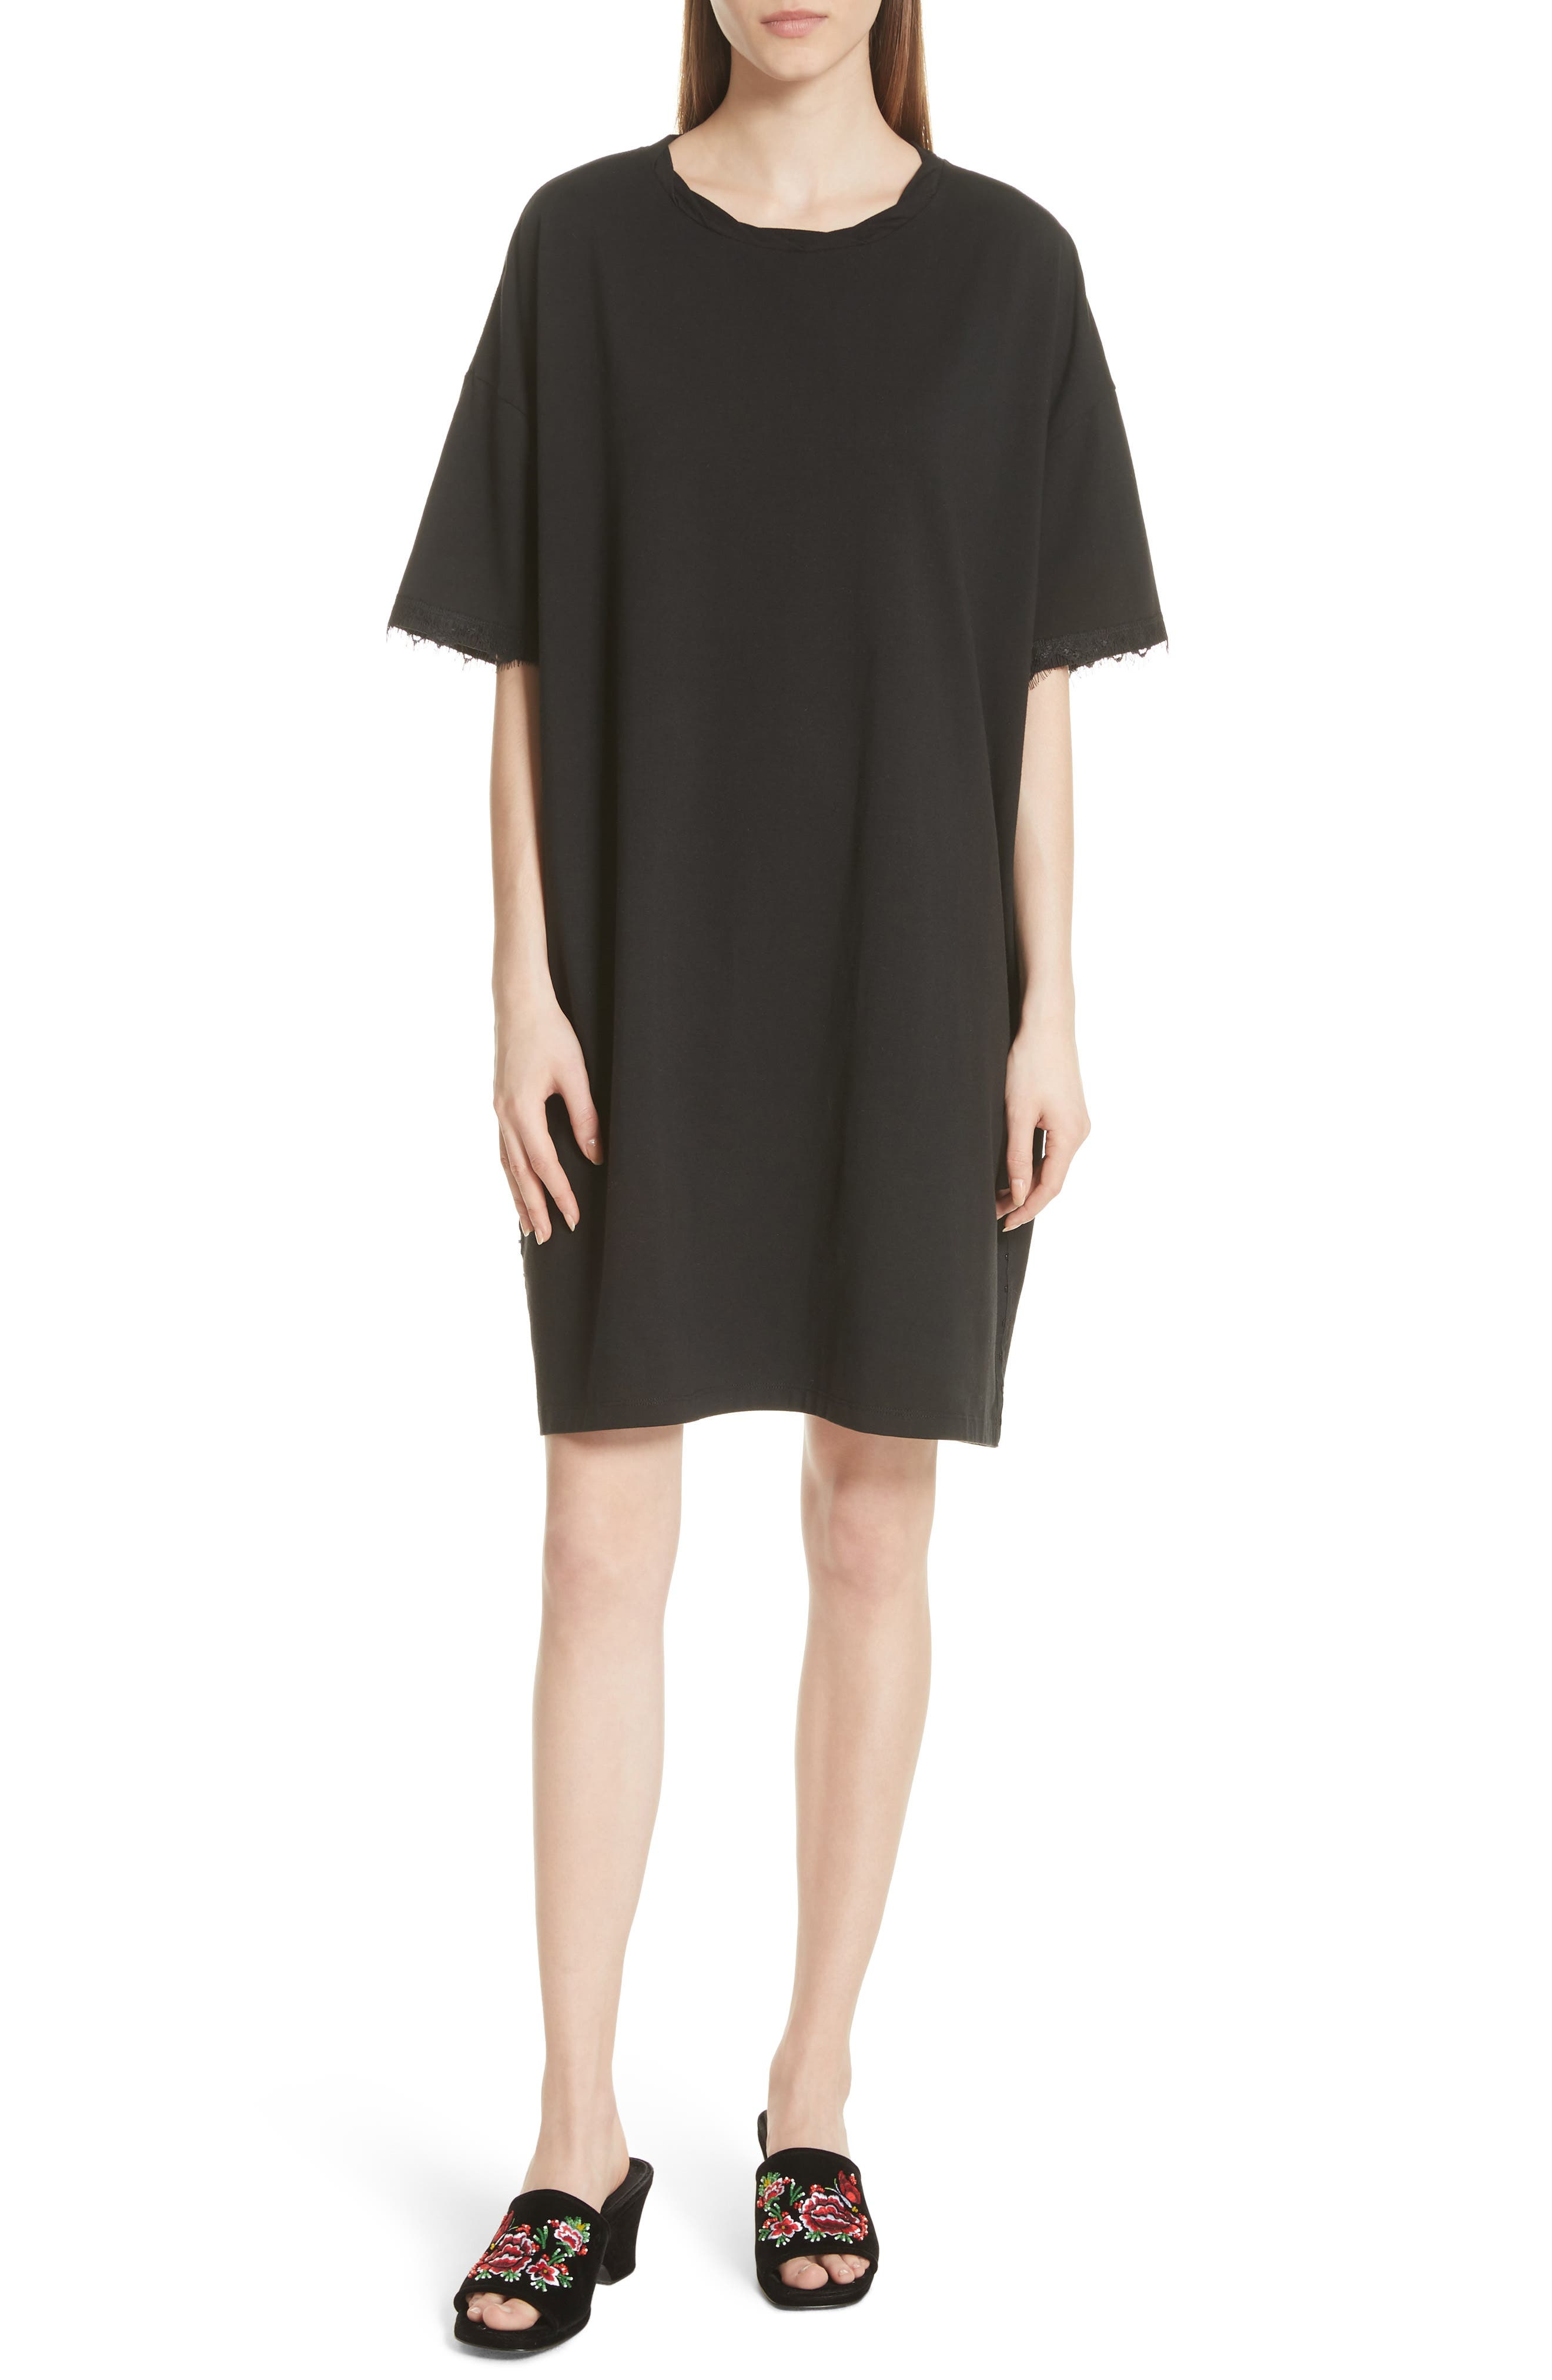 OPENING CEREMONY,                             Hook-and-Eye T-Shirt Dress,                             Main thumbnail 1, color,                             014